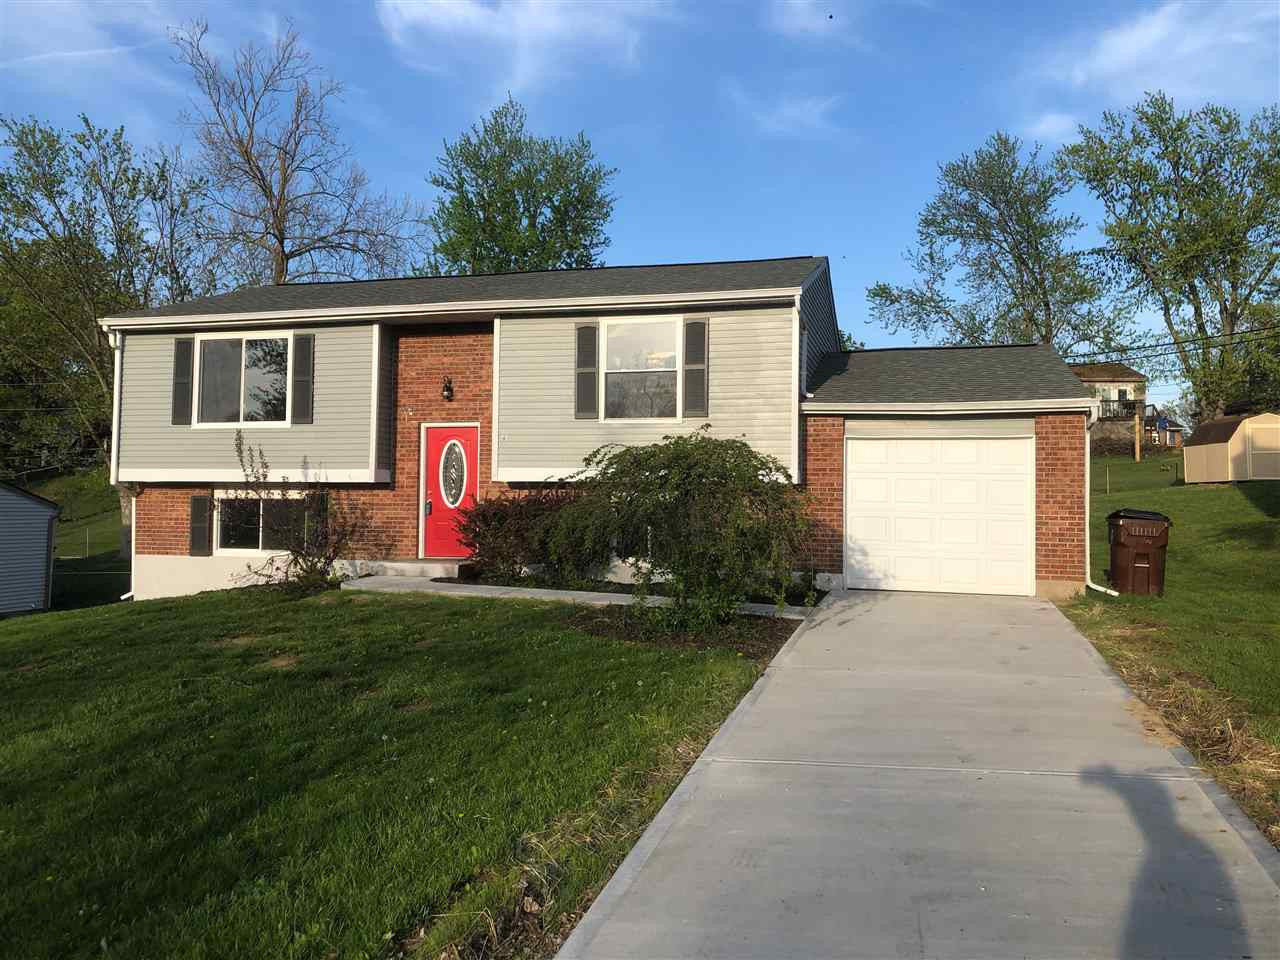 Photo 2 for 6 Meadow Hill Dr Covington, KY 41017